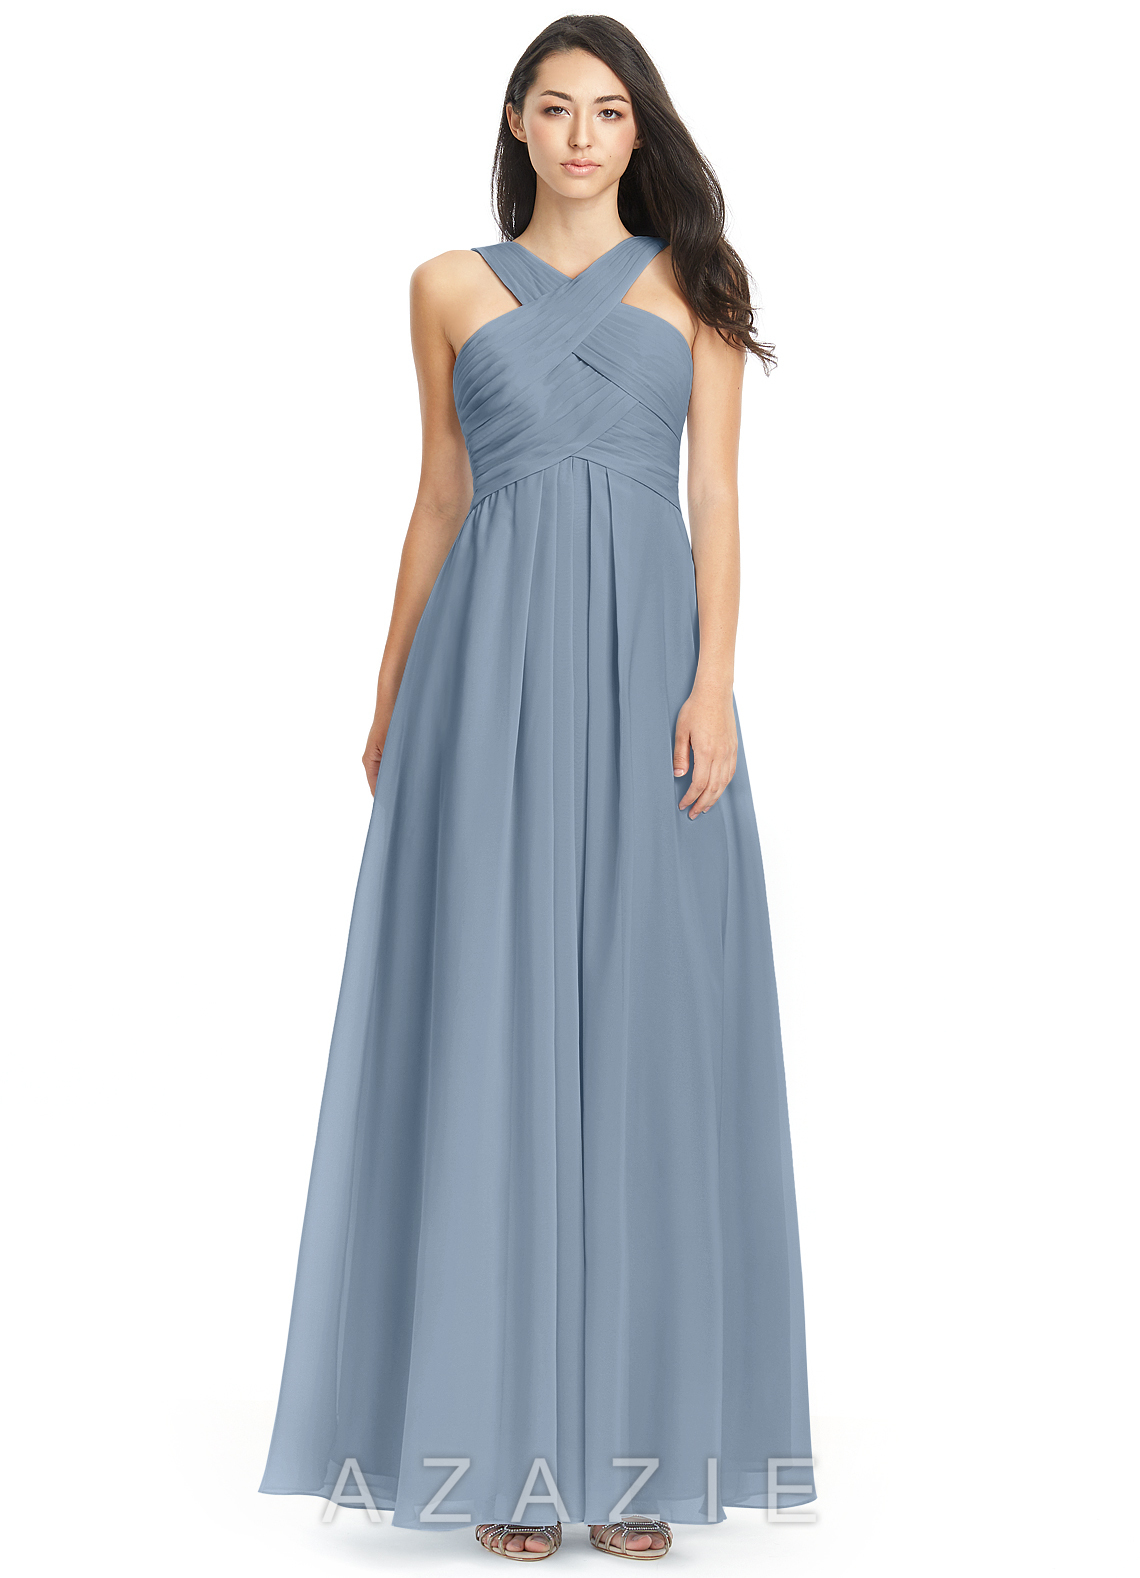 cf0686b10ce Used Azazie Bridesmaid Dress Dusty Blue - Data Dynamic AG